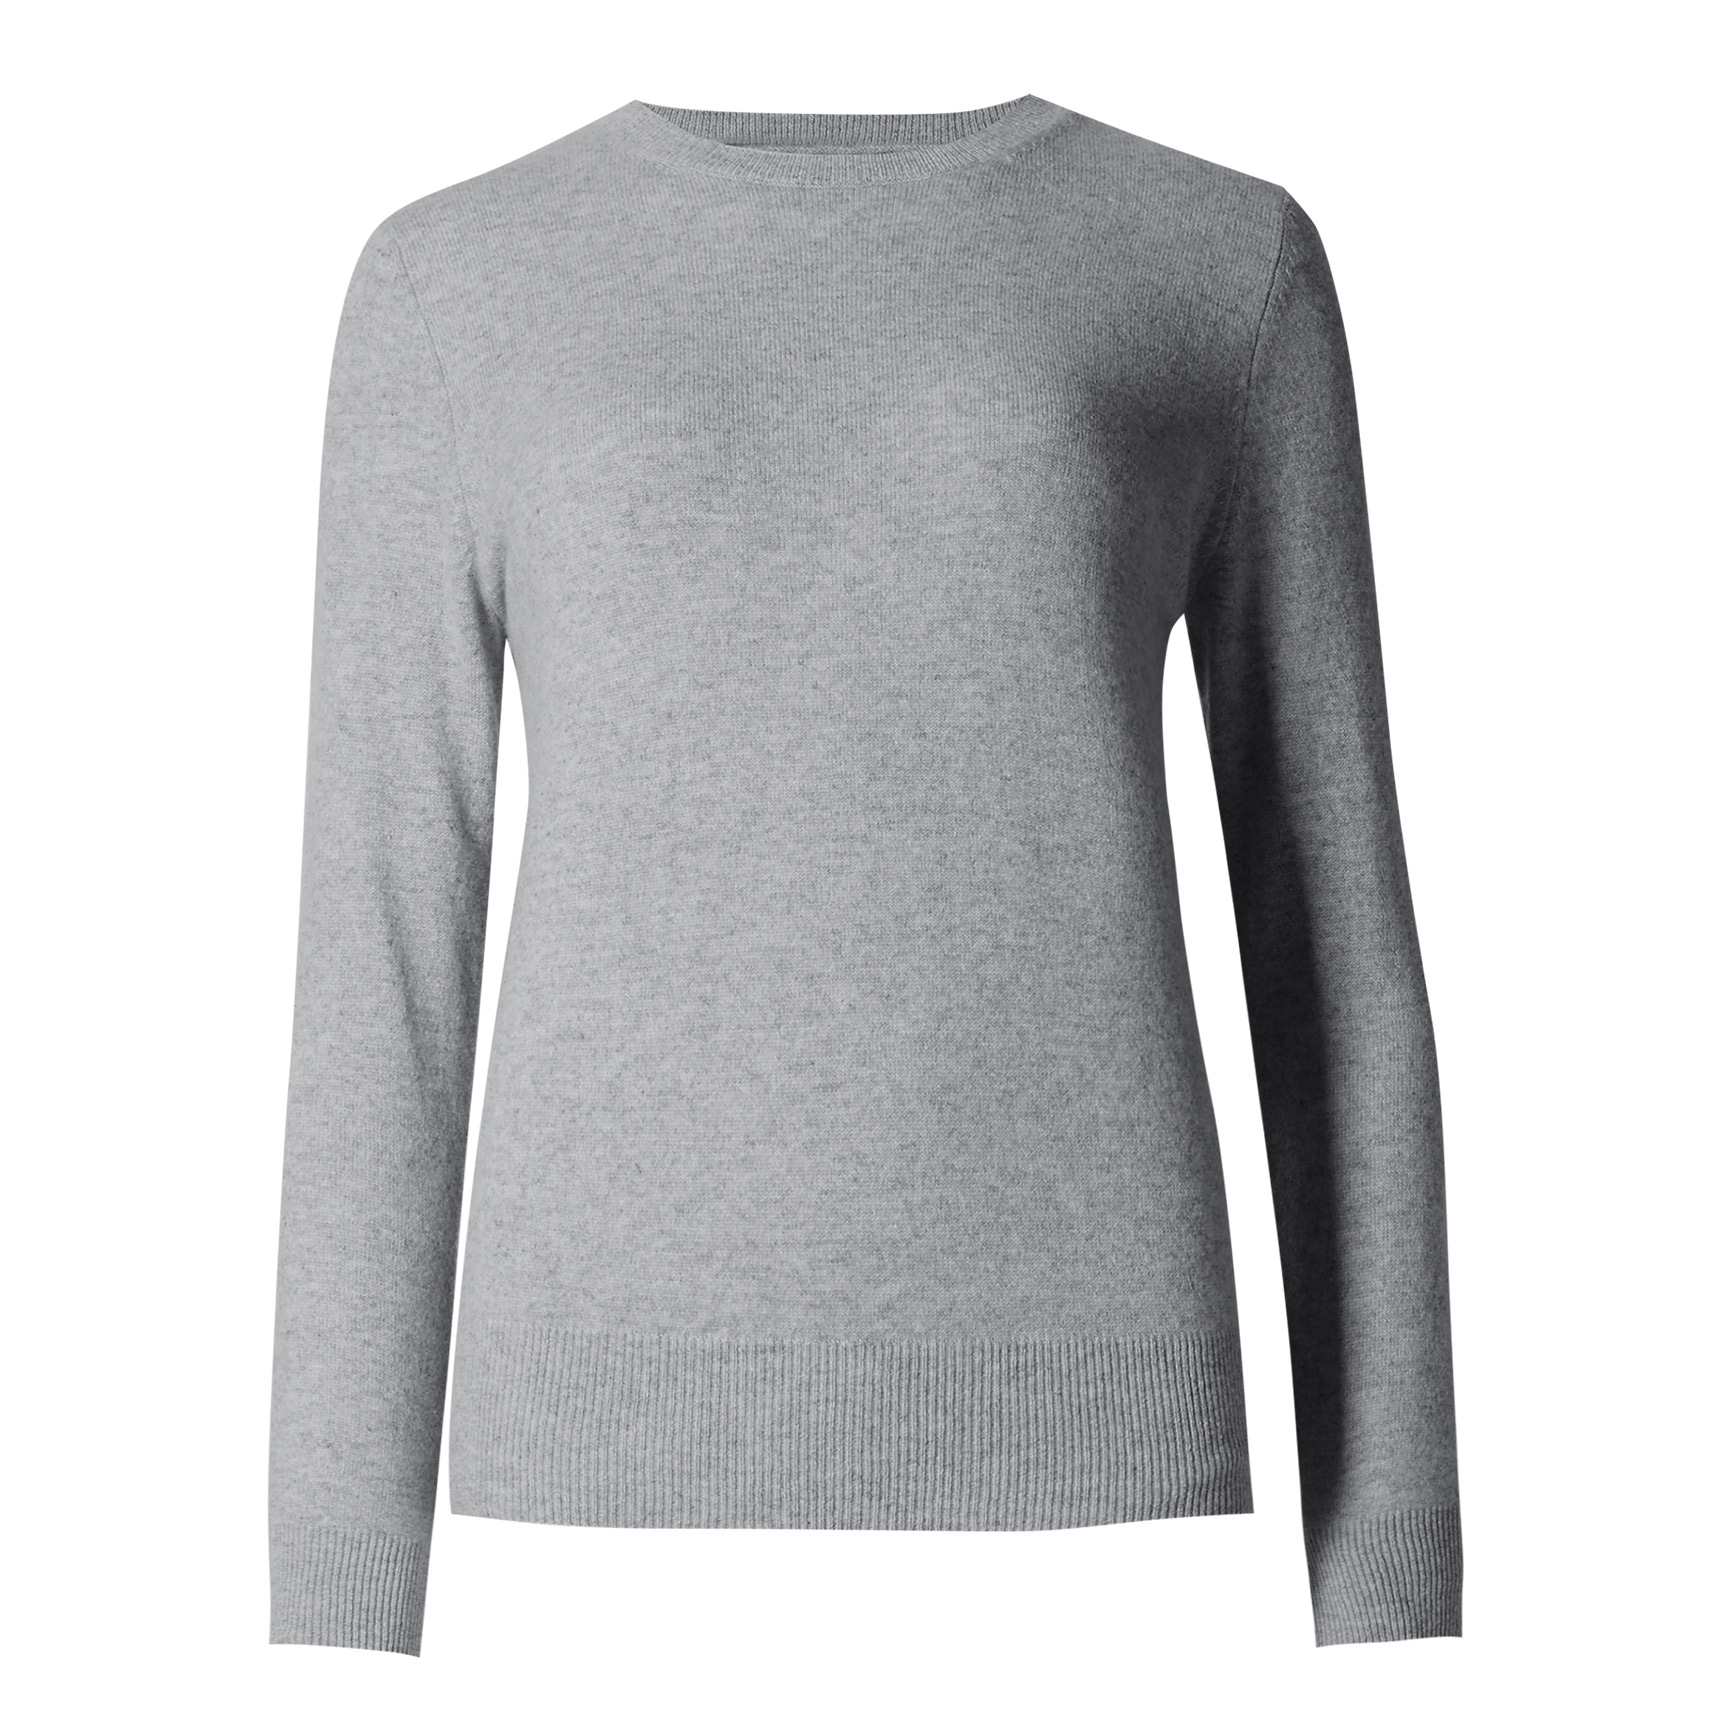 Hero_Square_m_and_s_grey_jumper.jpg